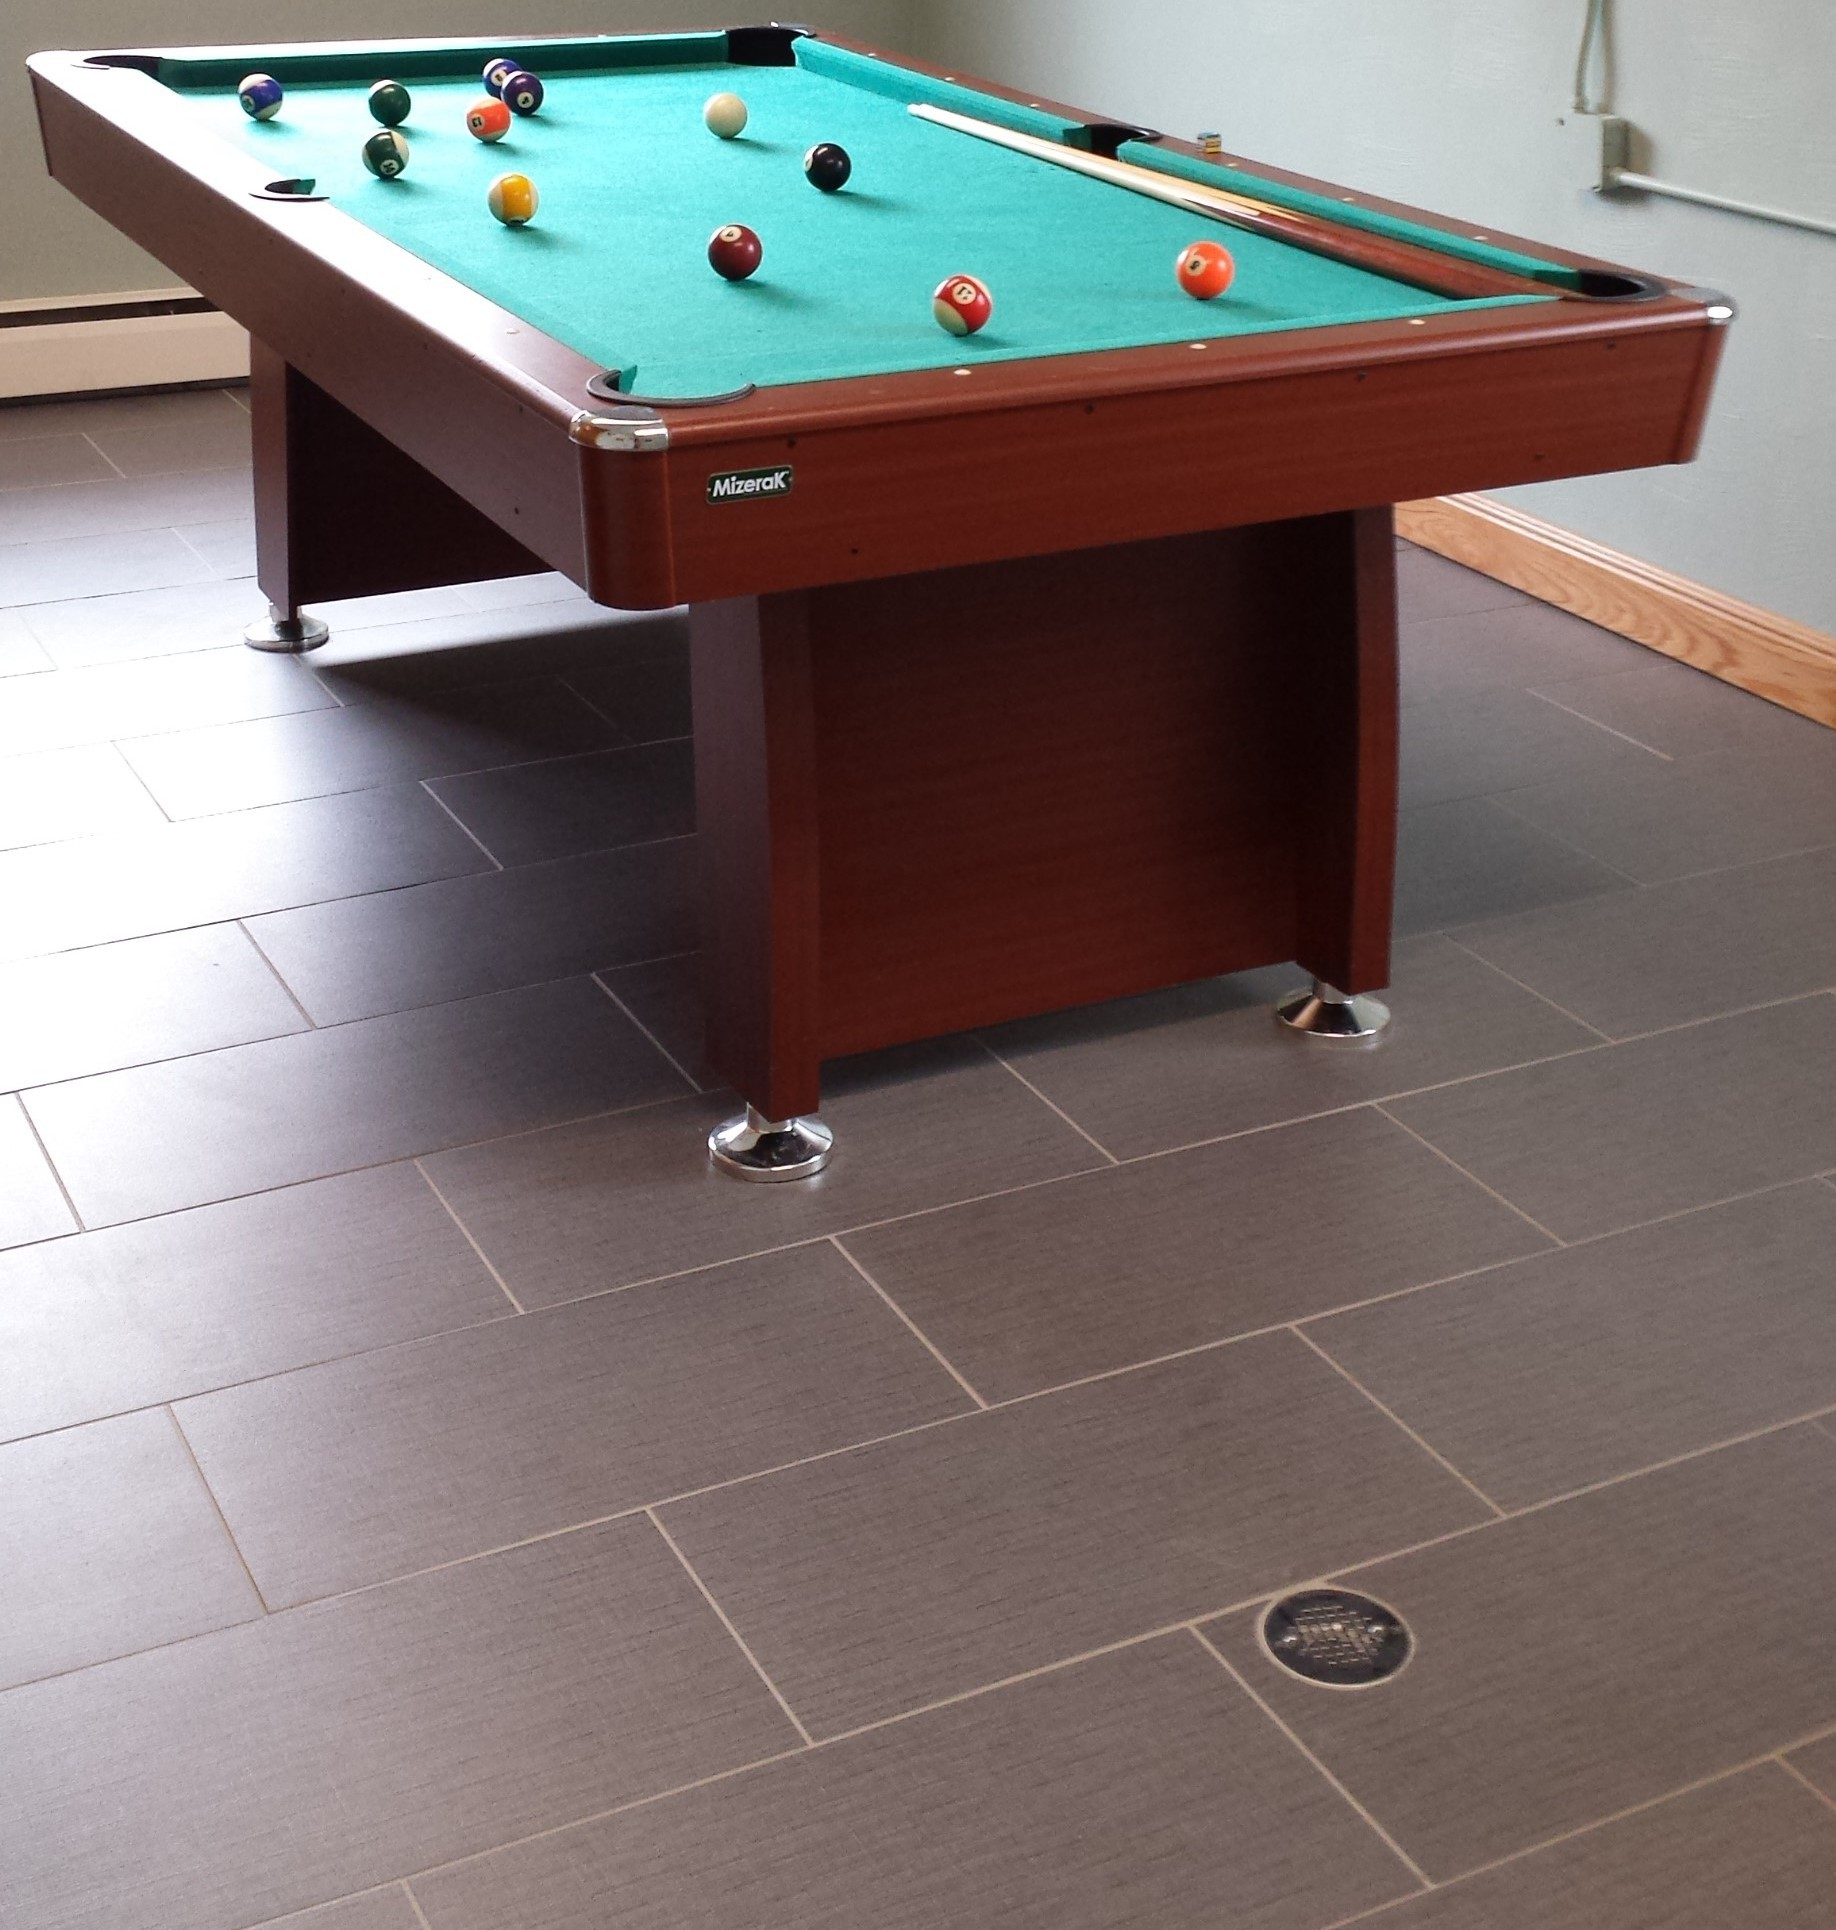 Top quality tile services near Pittsburgh, PA